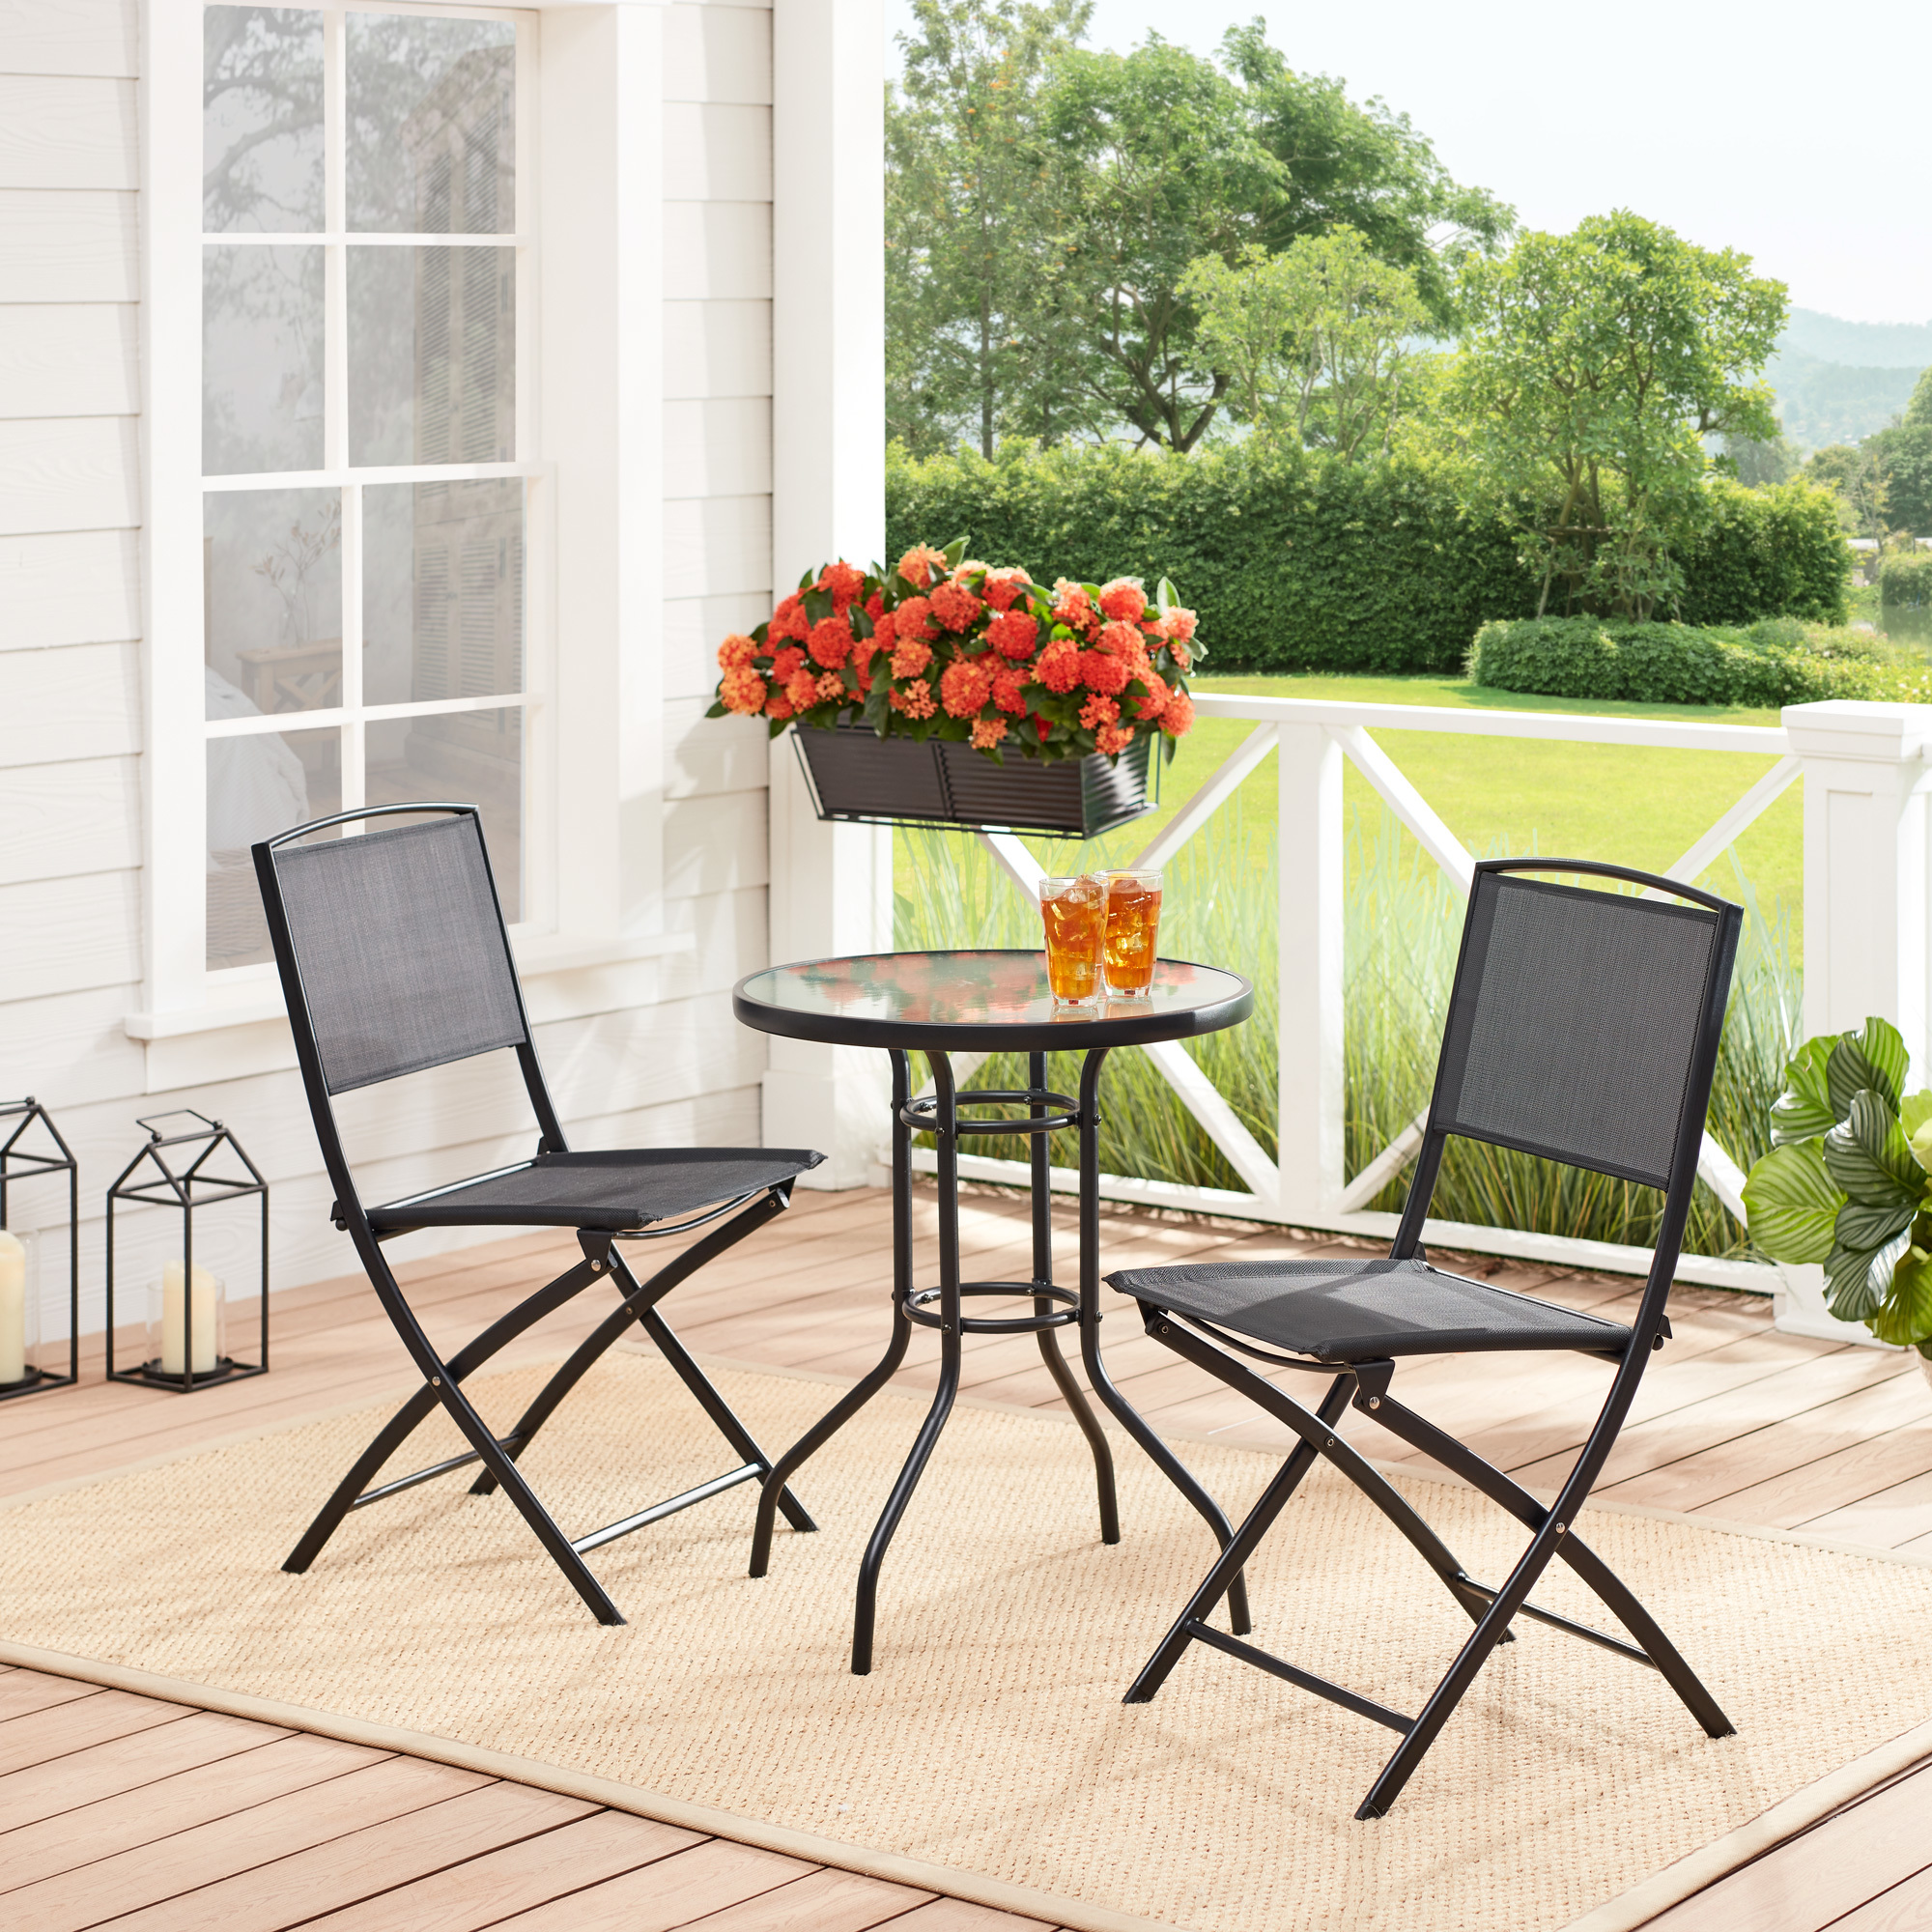 mainstays albany lane 3 piece outdoor patio bistro set multiple colors